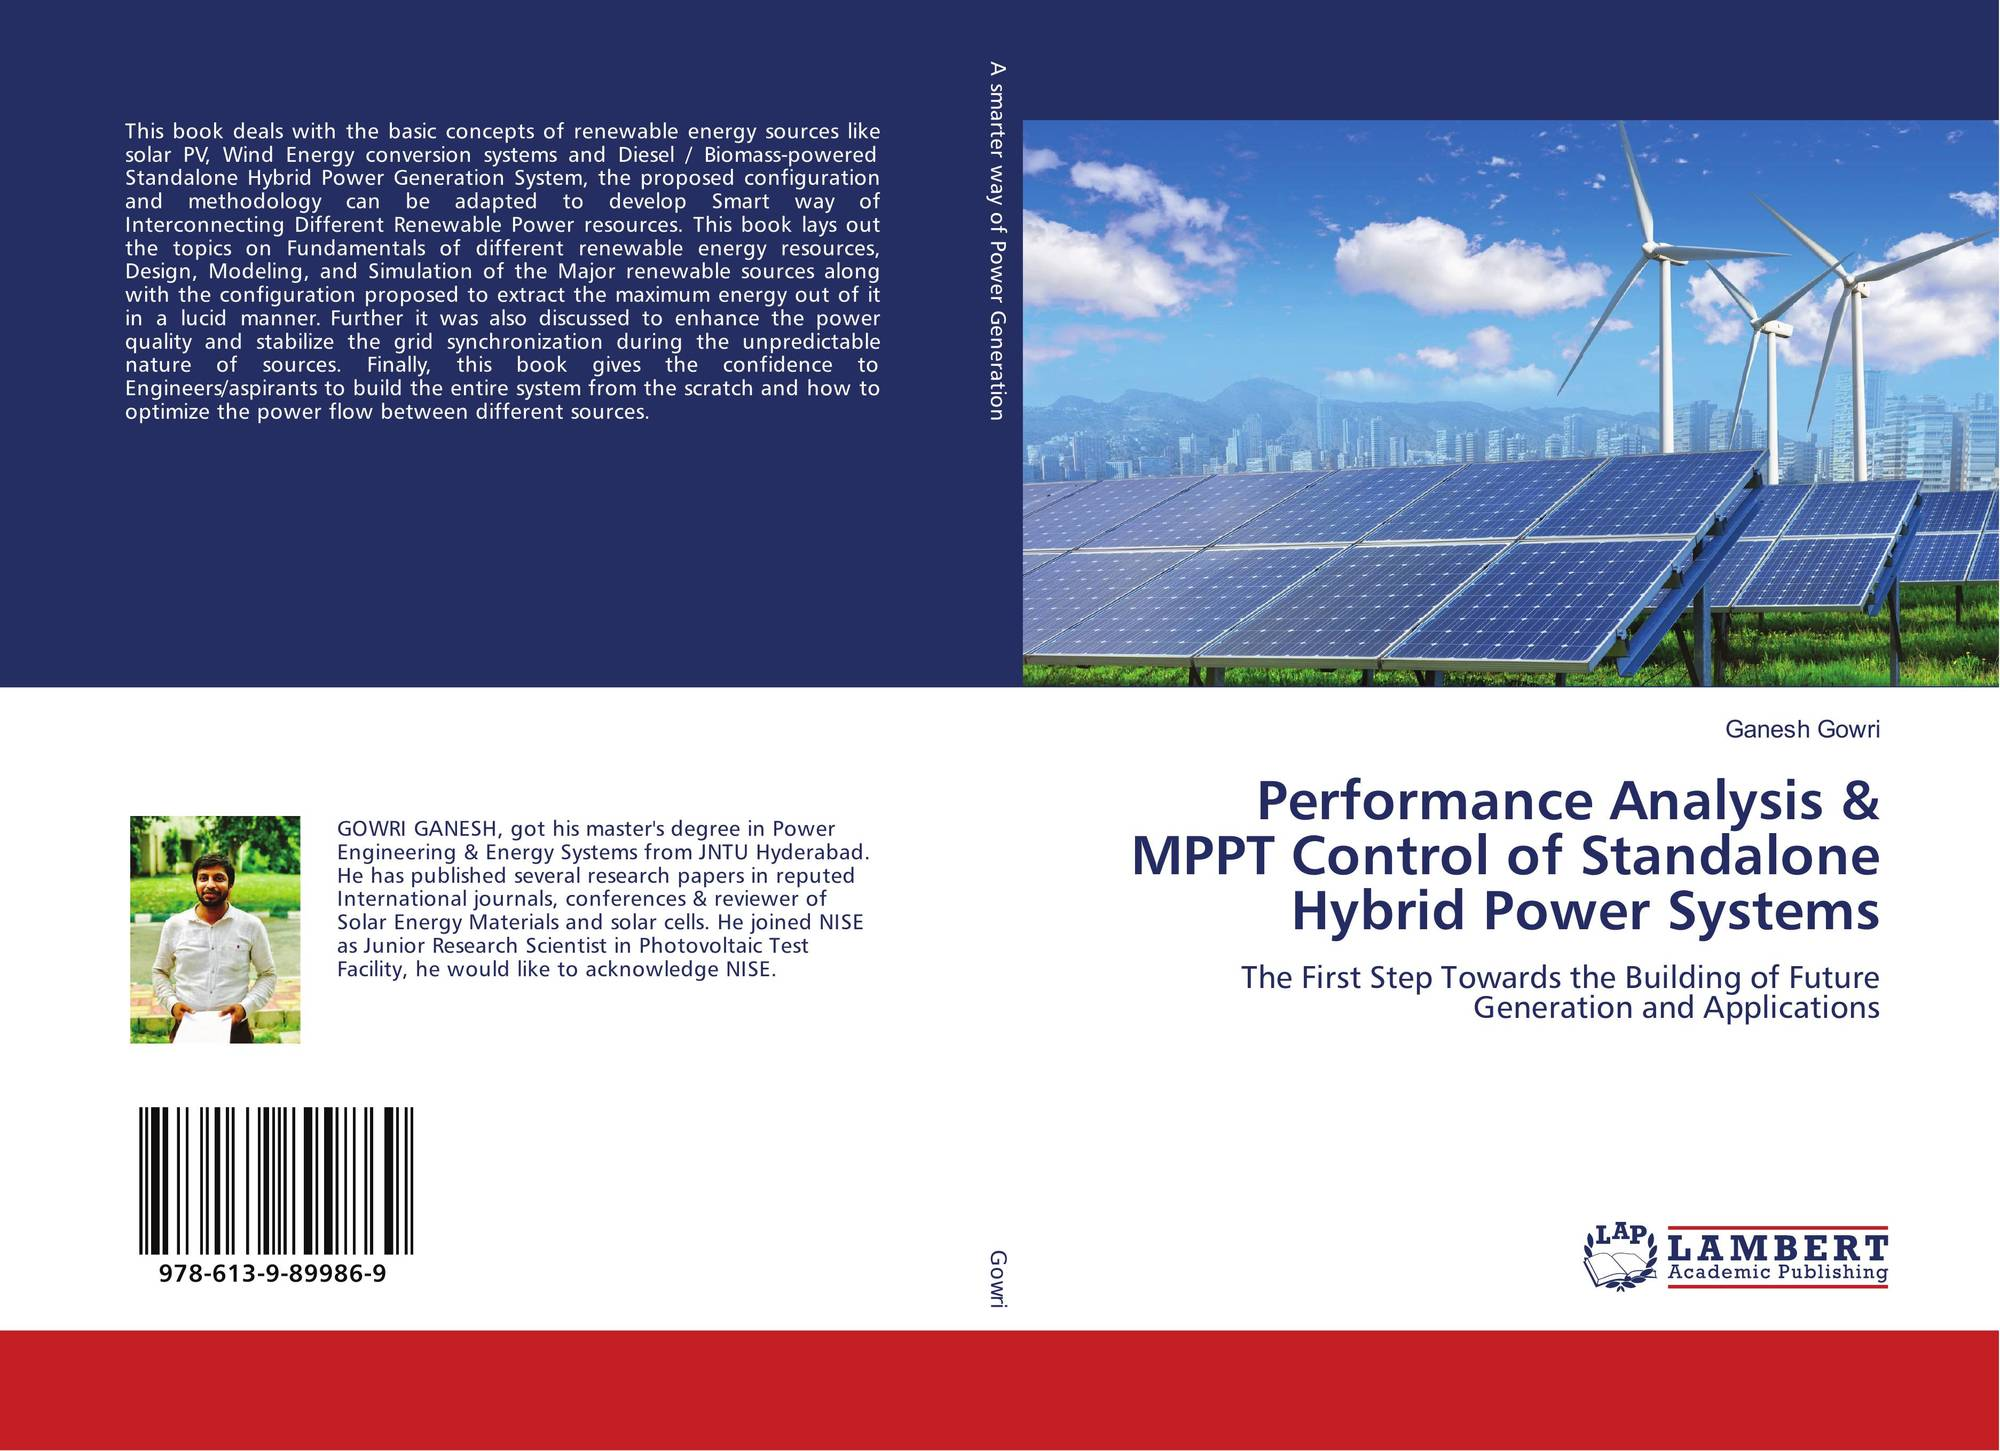 Performance Analysis Mppt Control Of Standalone Hybrid Power Charge Controller Versus Pwm Test Bookcover Systems 9786139899869